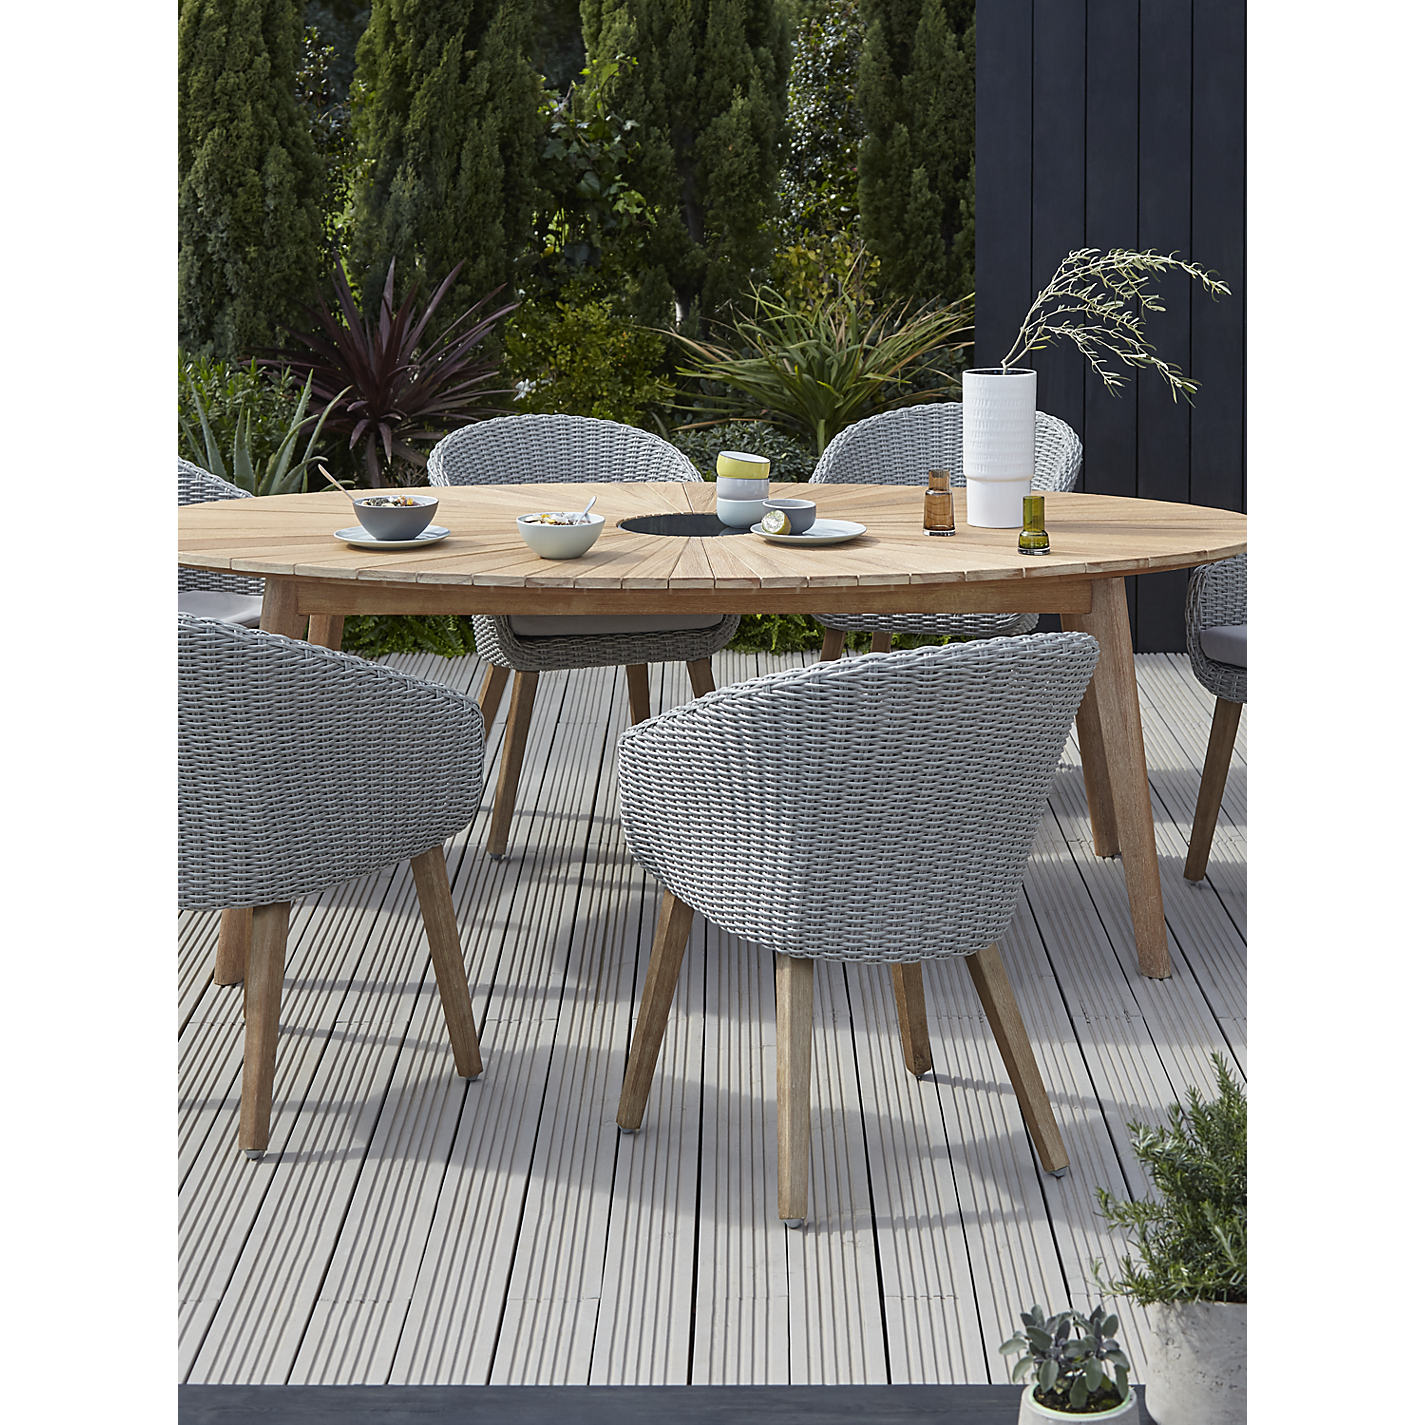 Buy John Lewis Sol 6 Seater Oval Dining Table Chairs Set FSC Certified